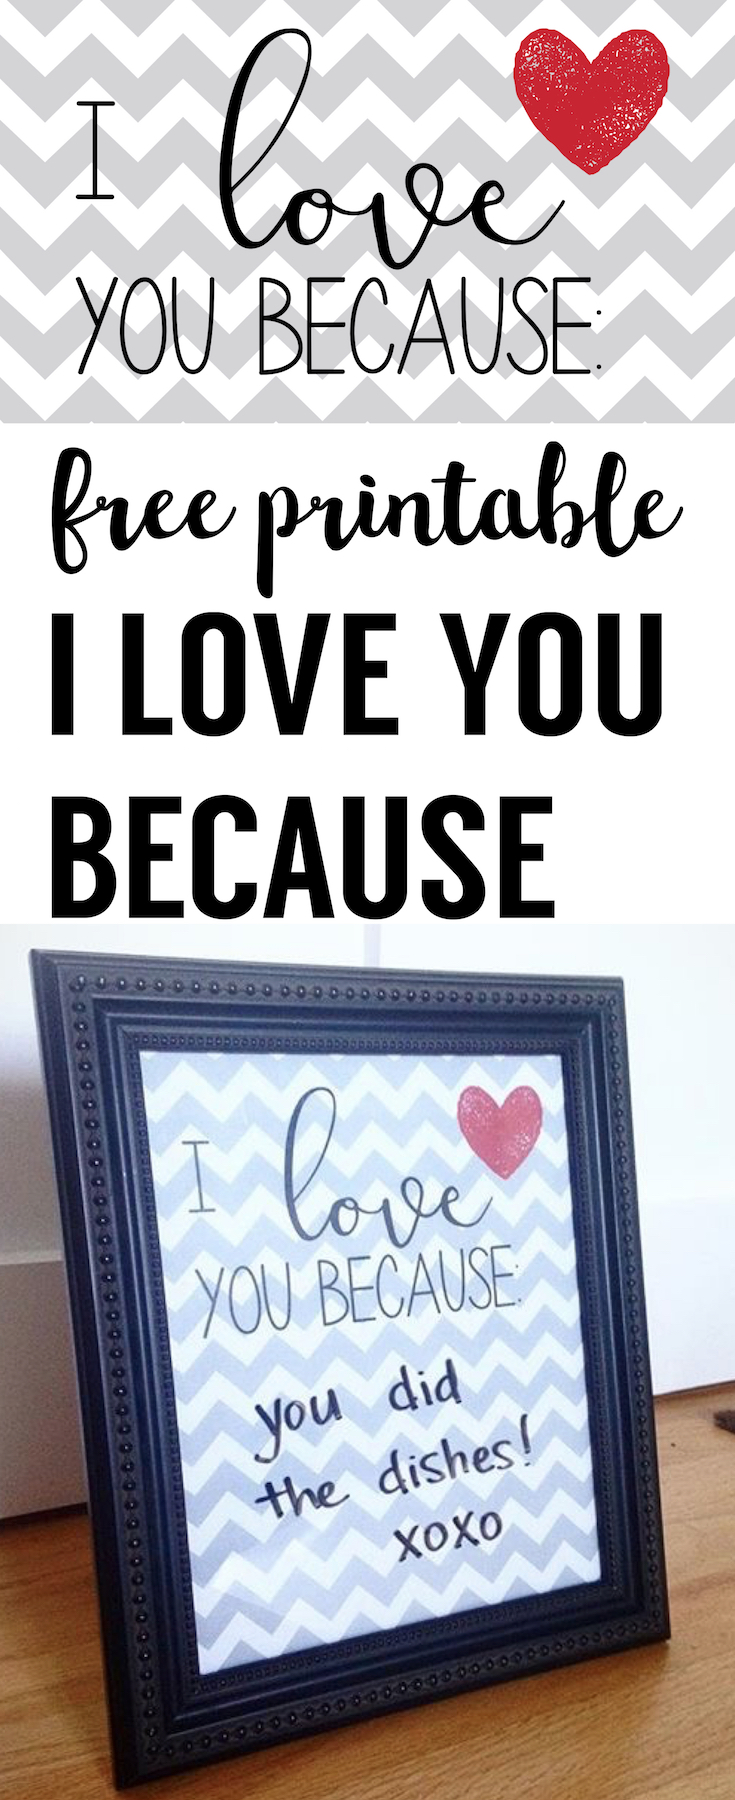 image about I Love You Because Printable known as Free of charge Printable: I Get pleasure from Yourself Considering that Poster - Paper Path Style